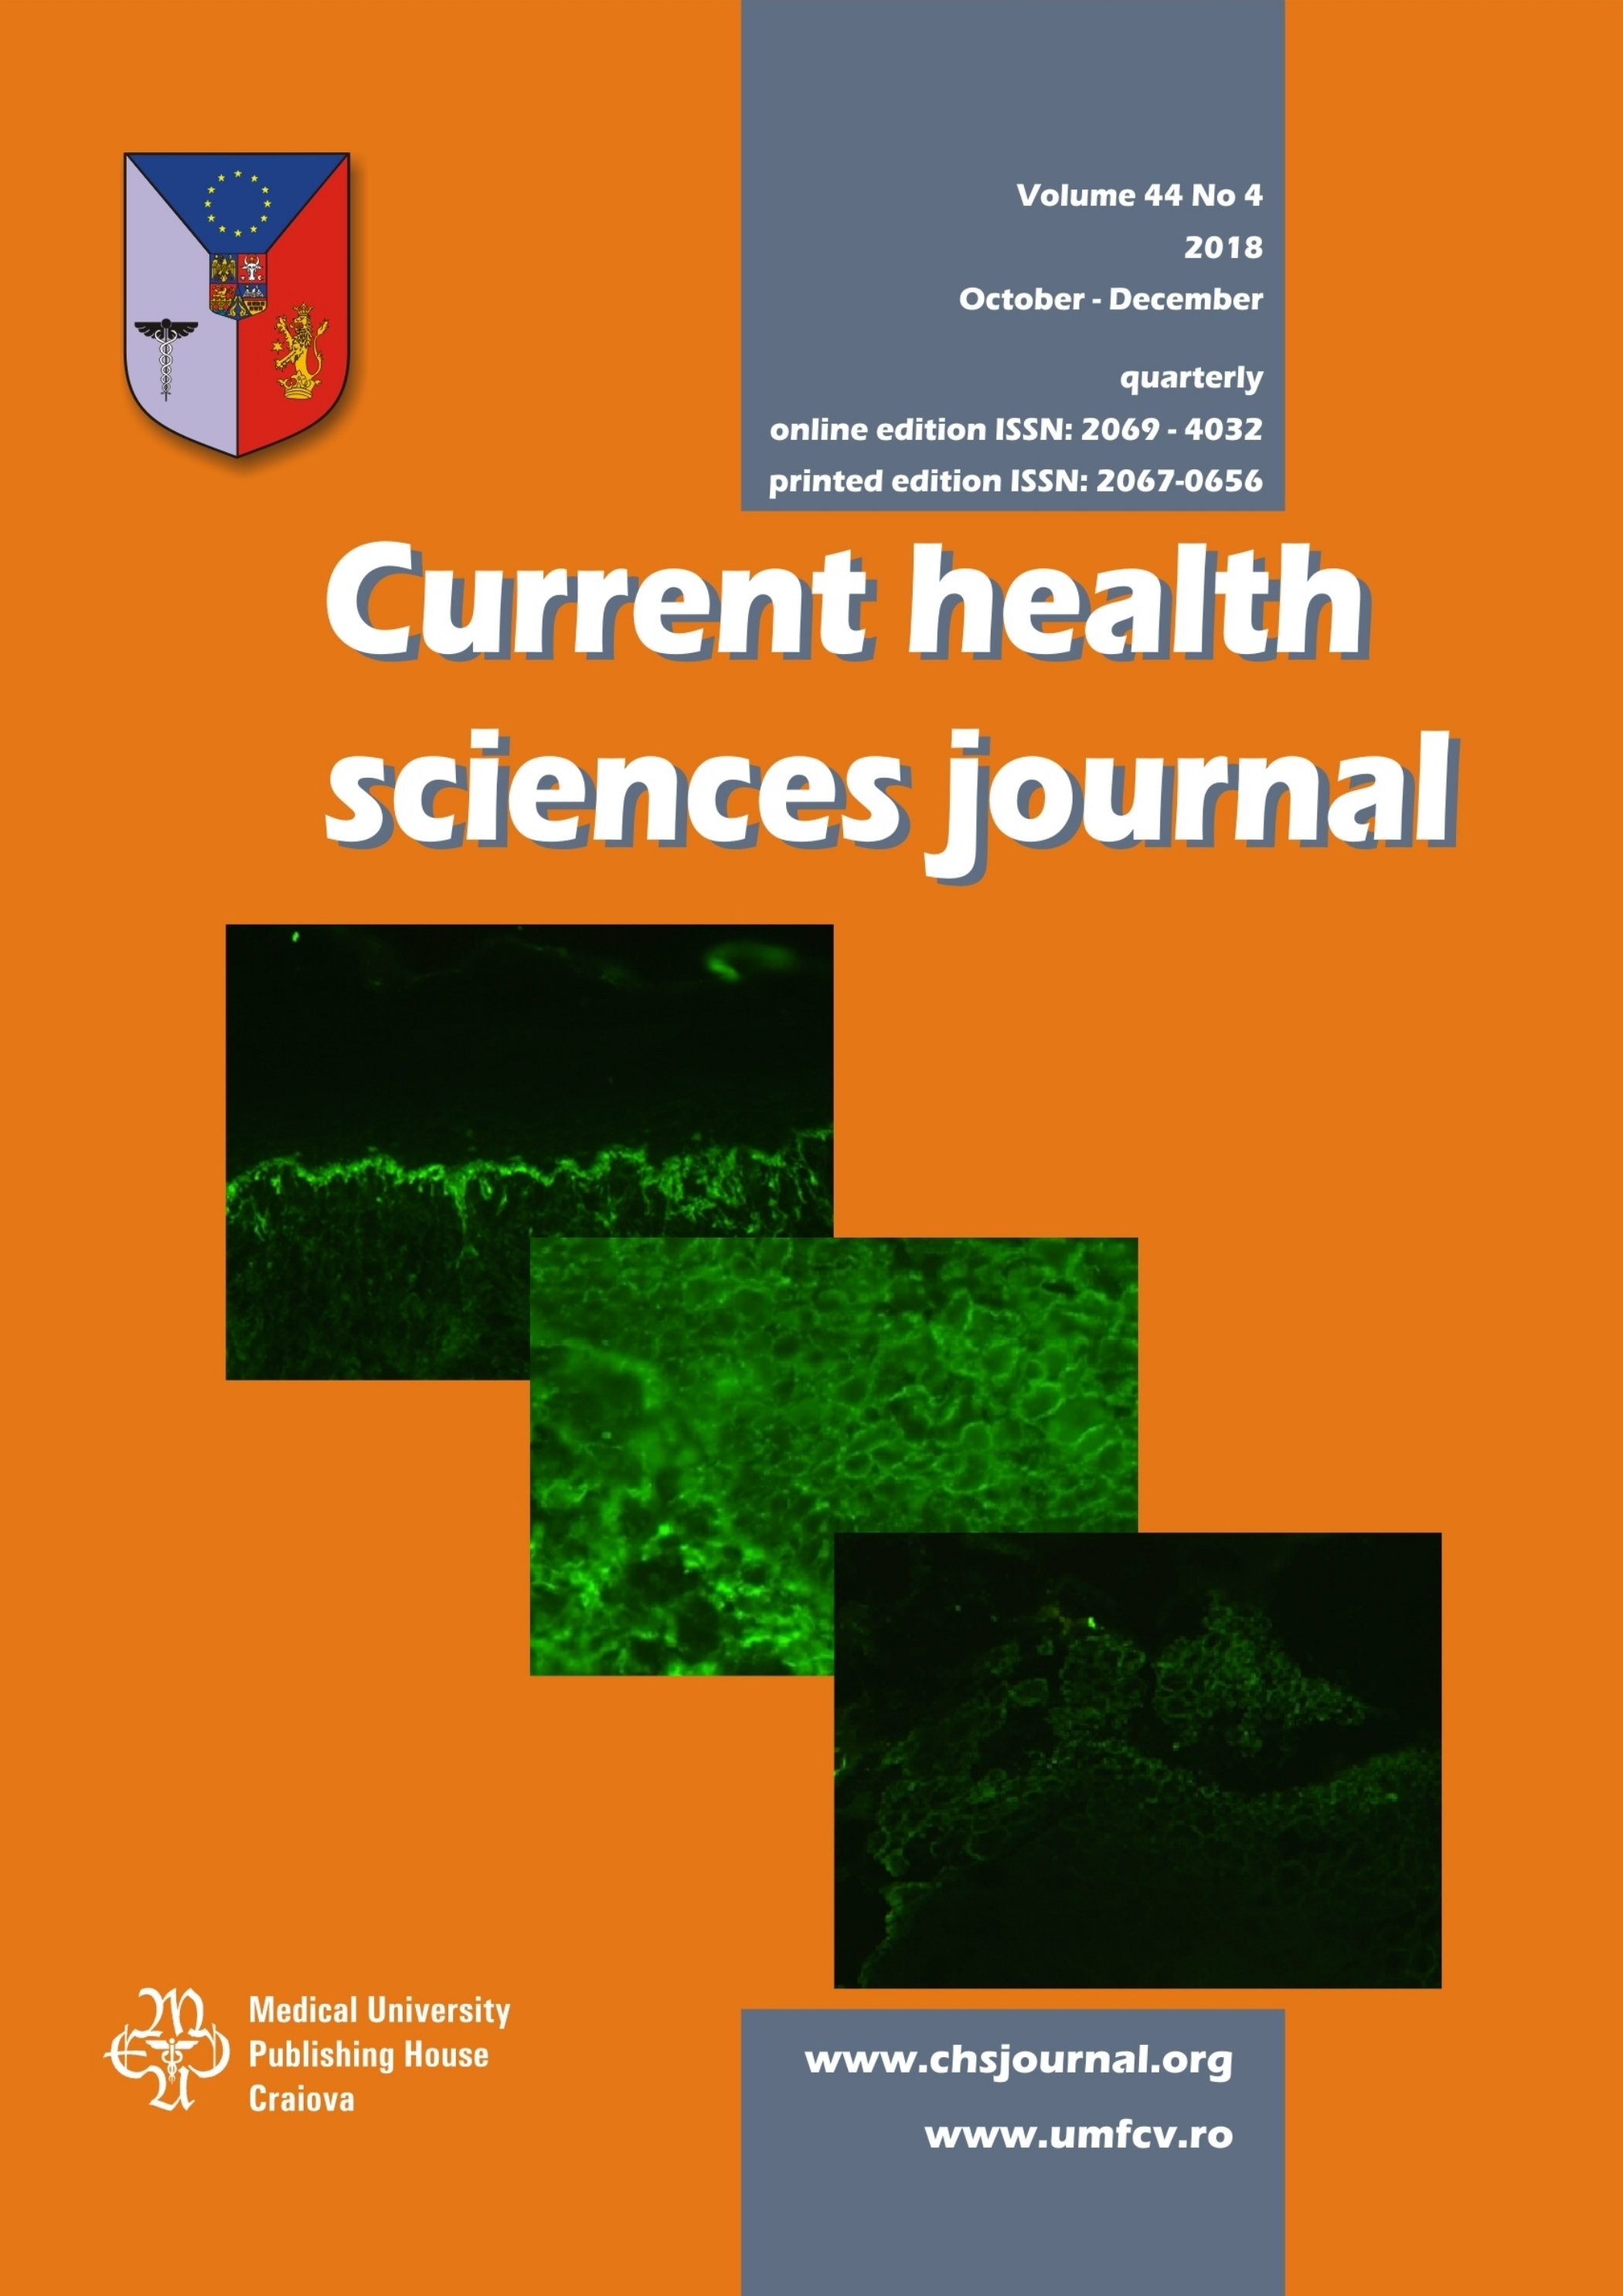 Current Health Sciences Journal, vol. 44 no. 4, 2018